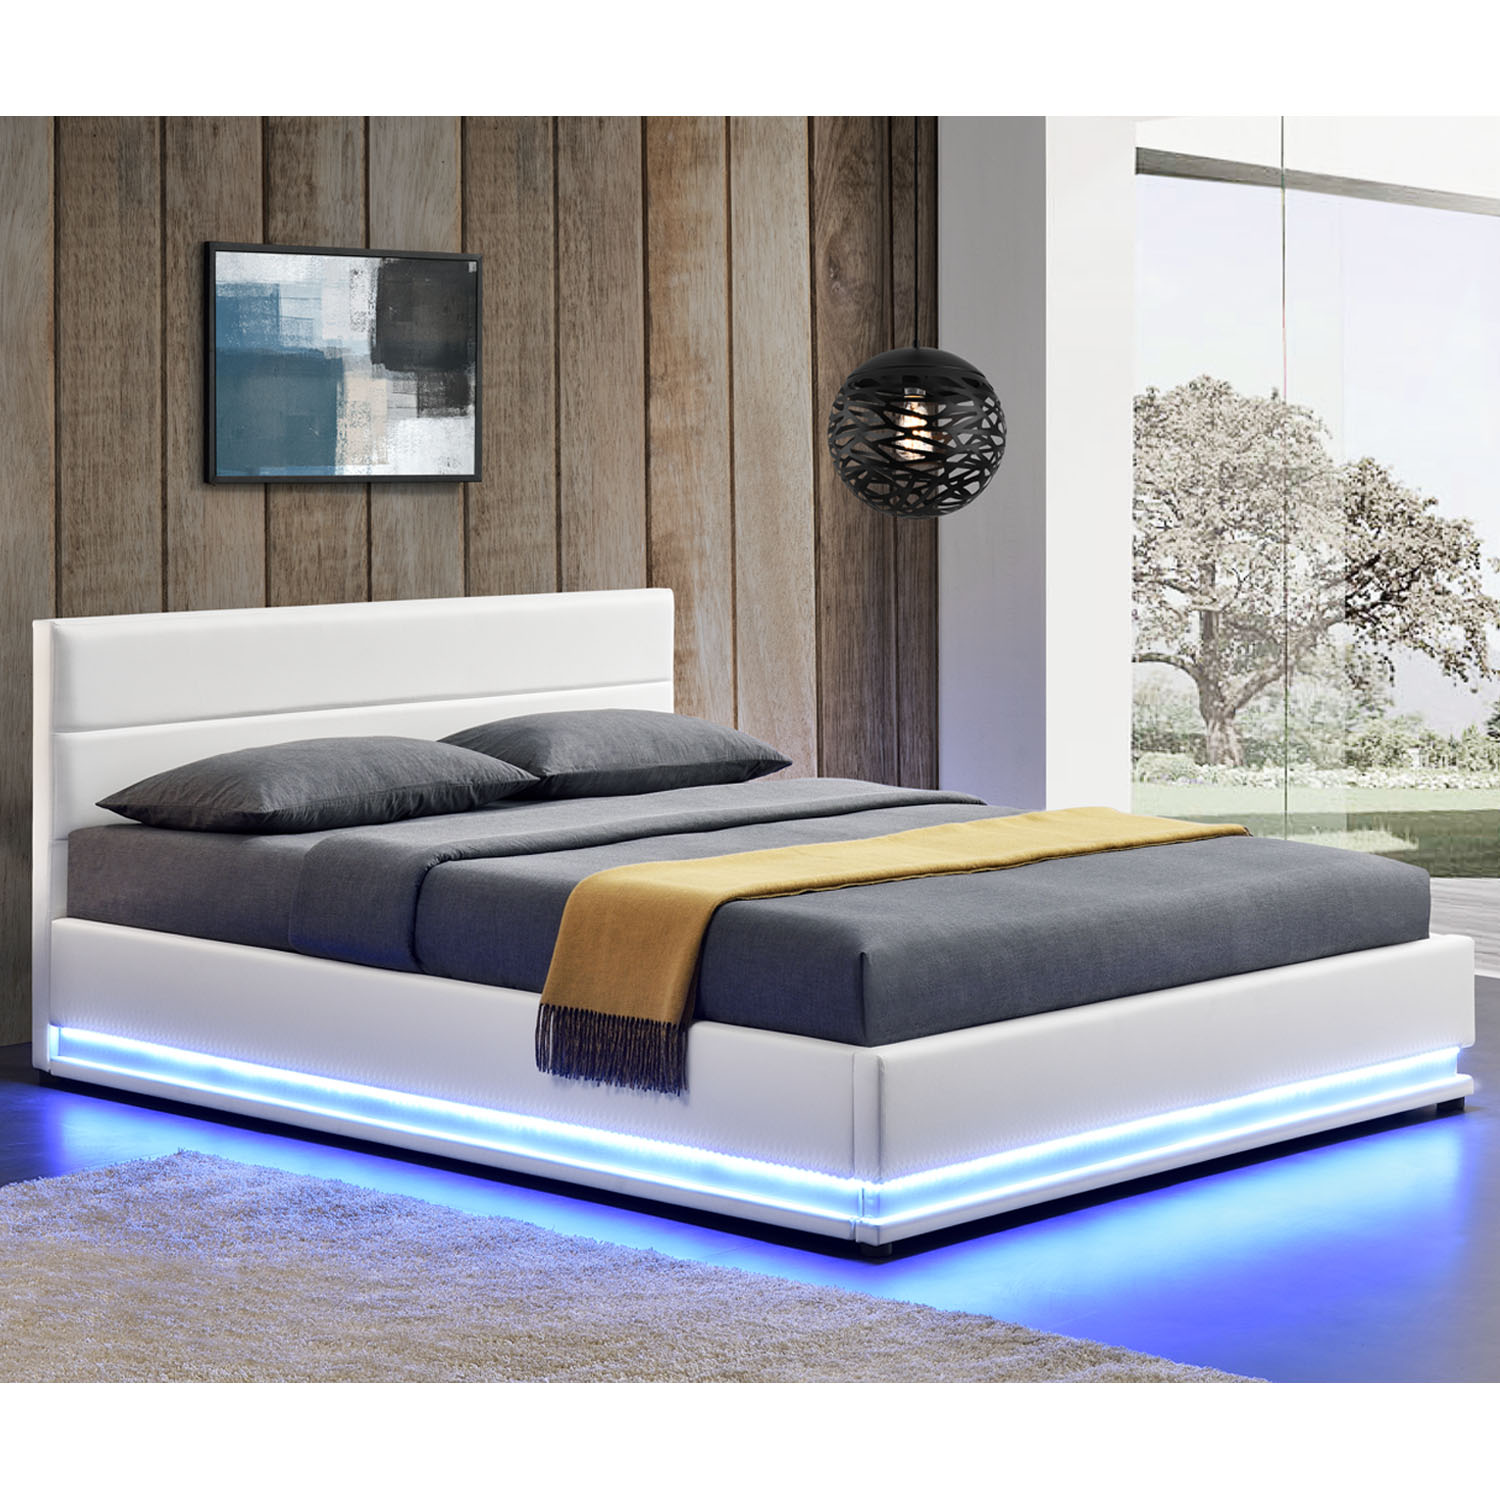 polsterbett kunstlederbett bettkasten mit led bettgestell. Black Bedroom Furniture Sets. Home Design Ideas